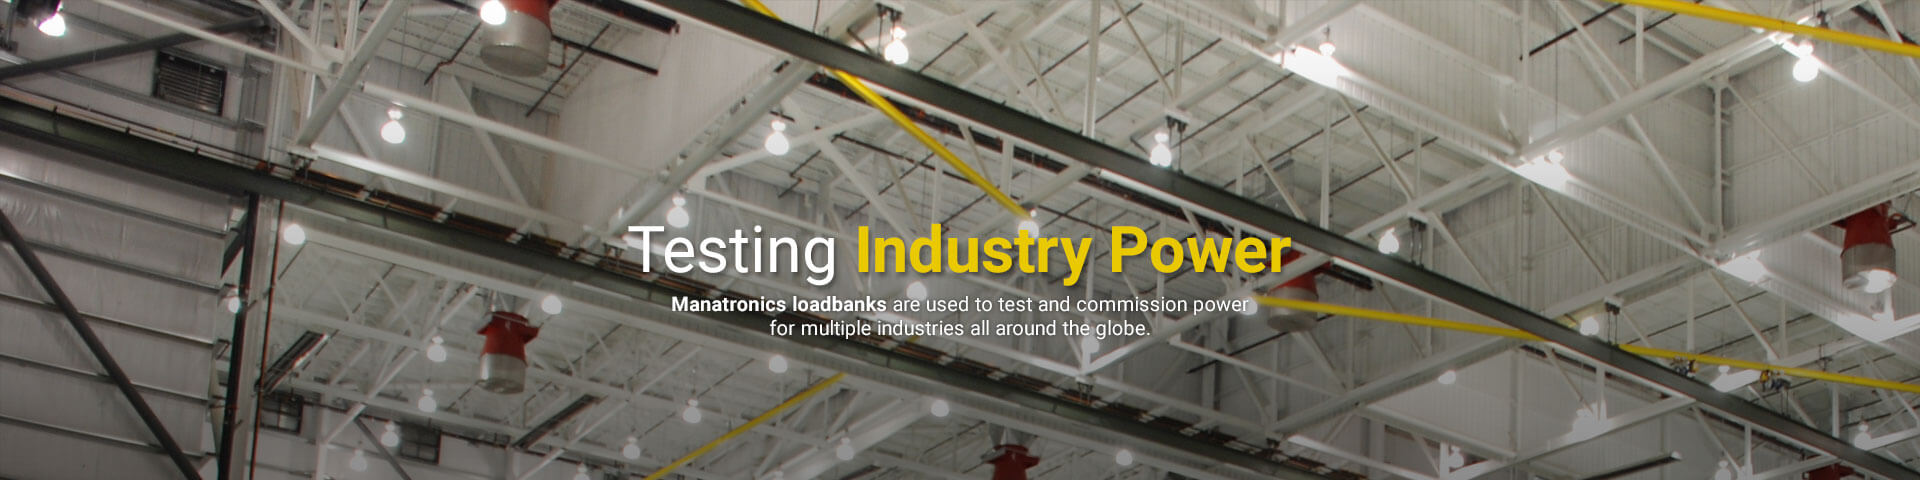 testing-industry-power